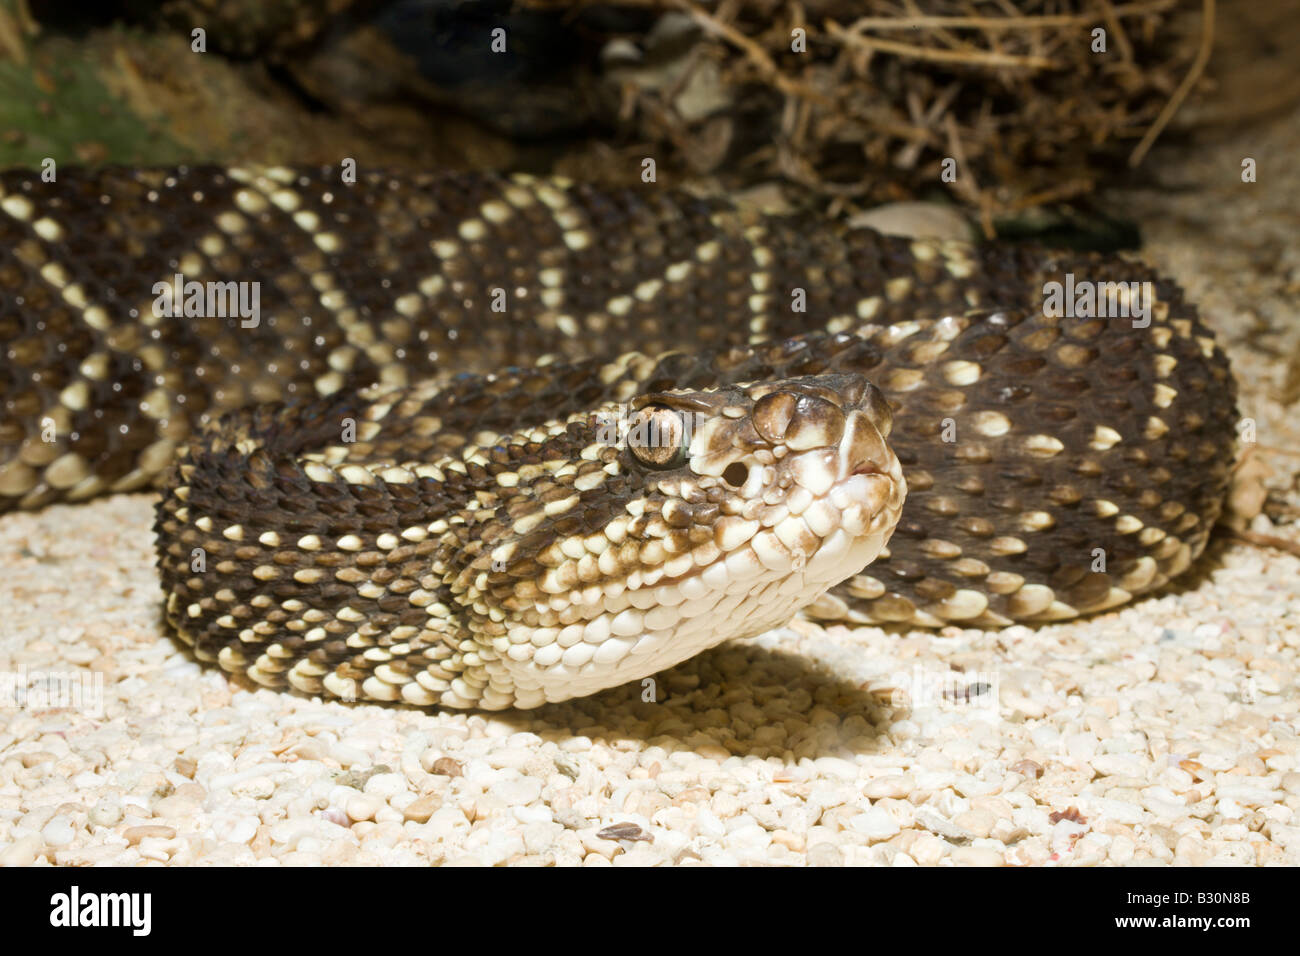 Rattle Snake Crotalus durissus - Stock Image